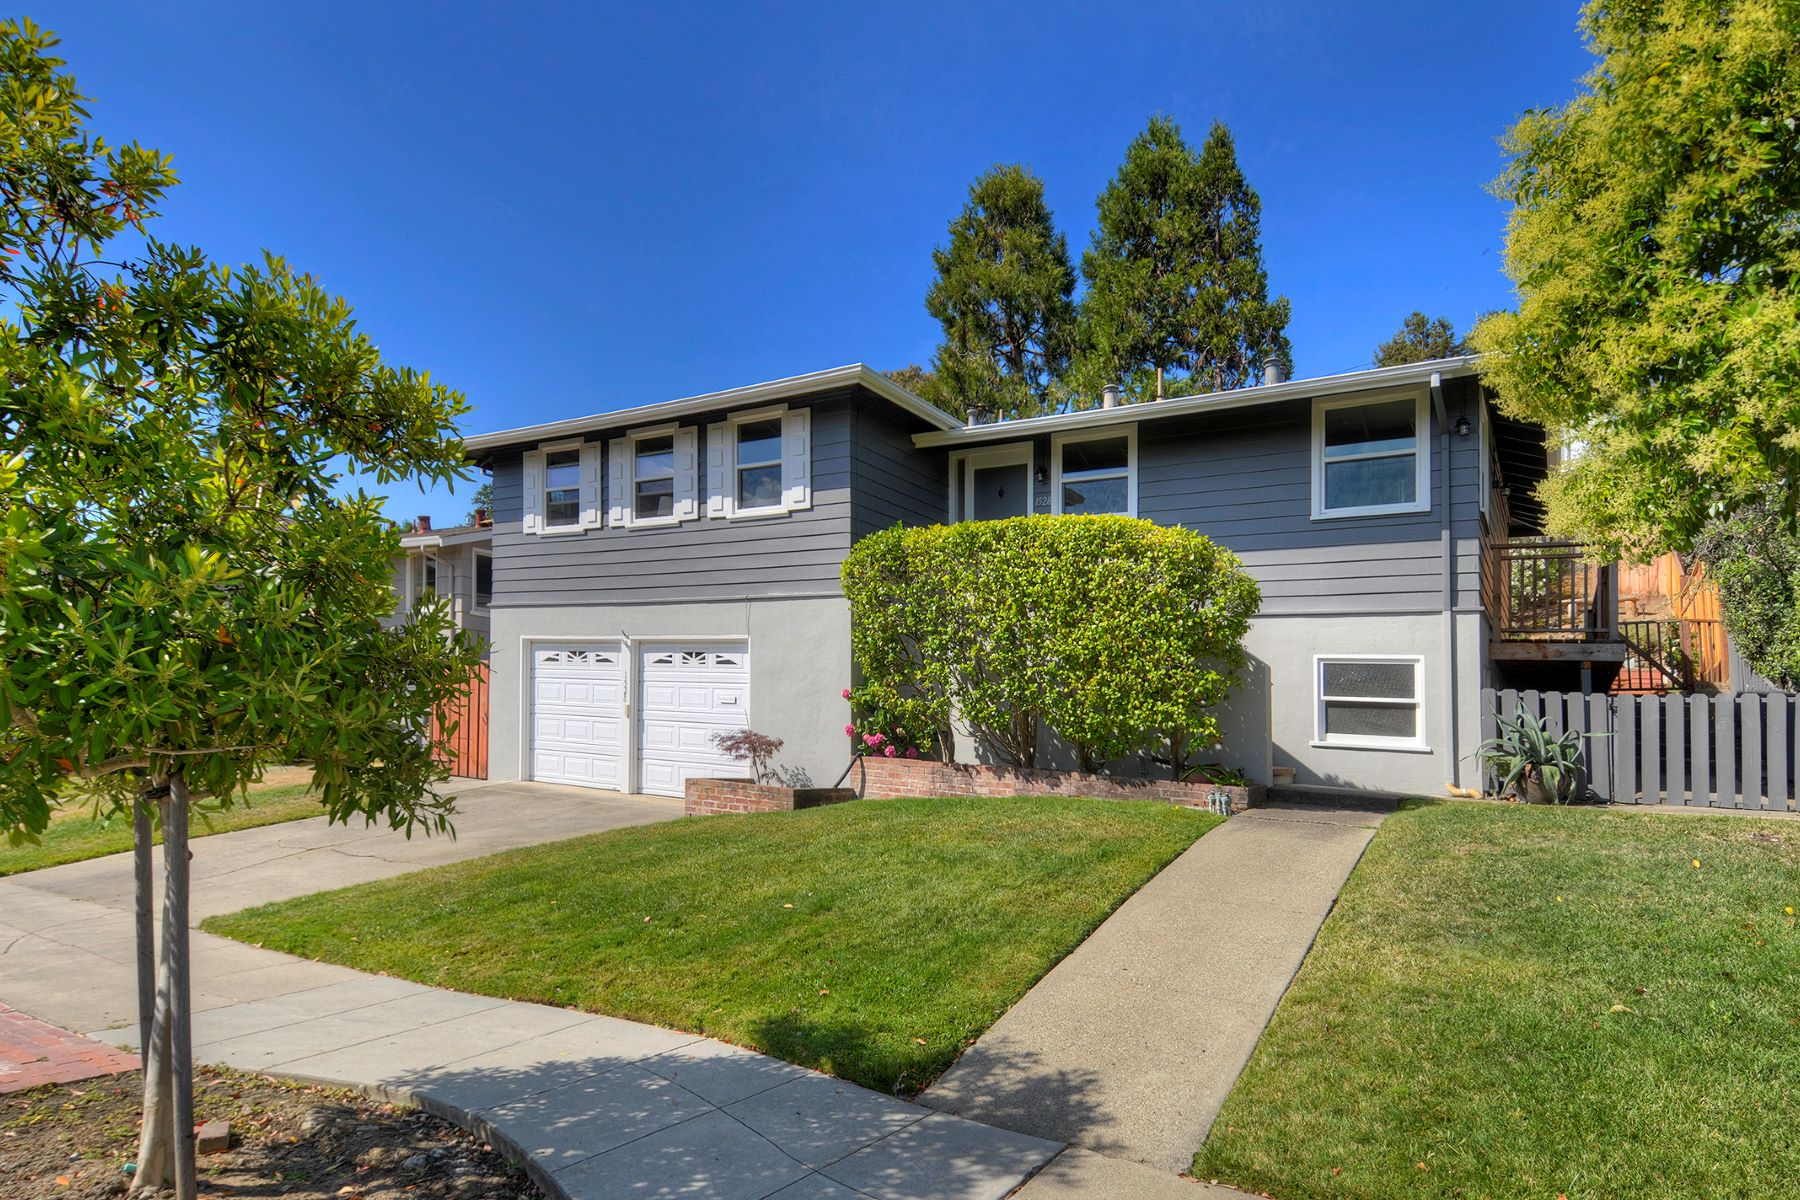 Single Family Homes for Sale at Incredible Light Filled Home in Desirable Redwood City Neighborhood 1528 Mitchell Way Redwood City, California 94061 United States